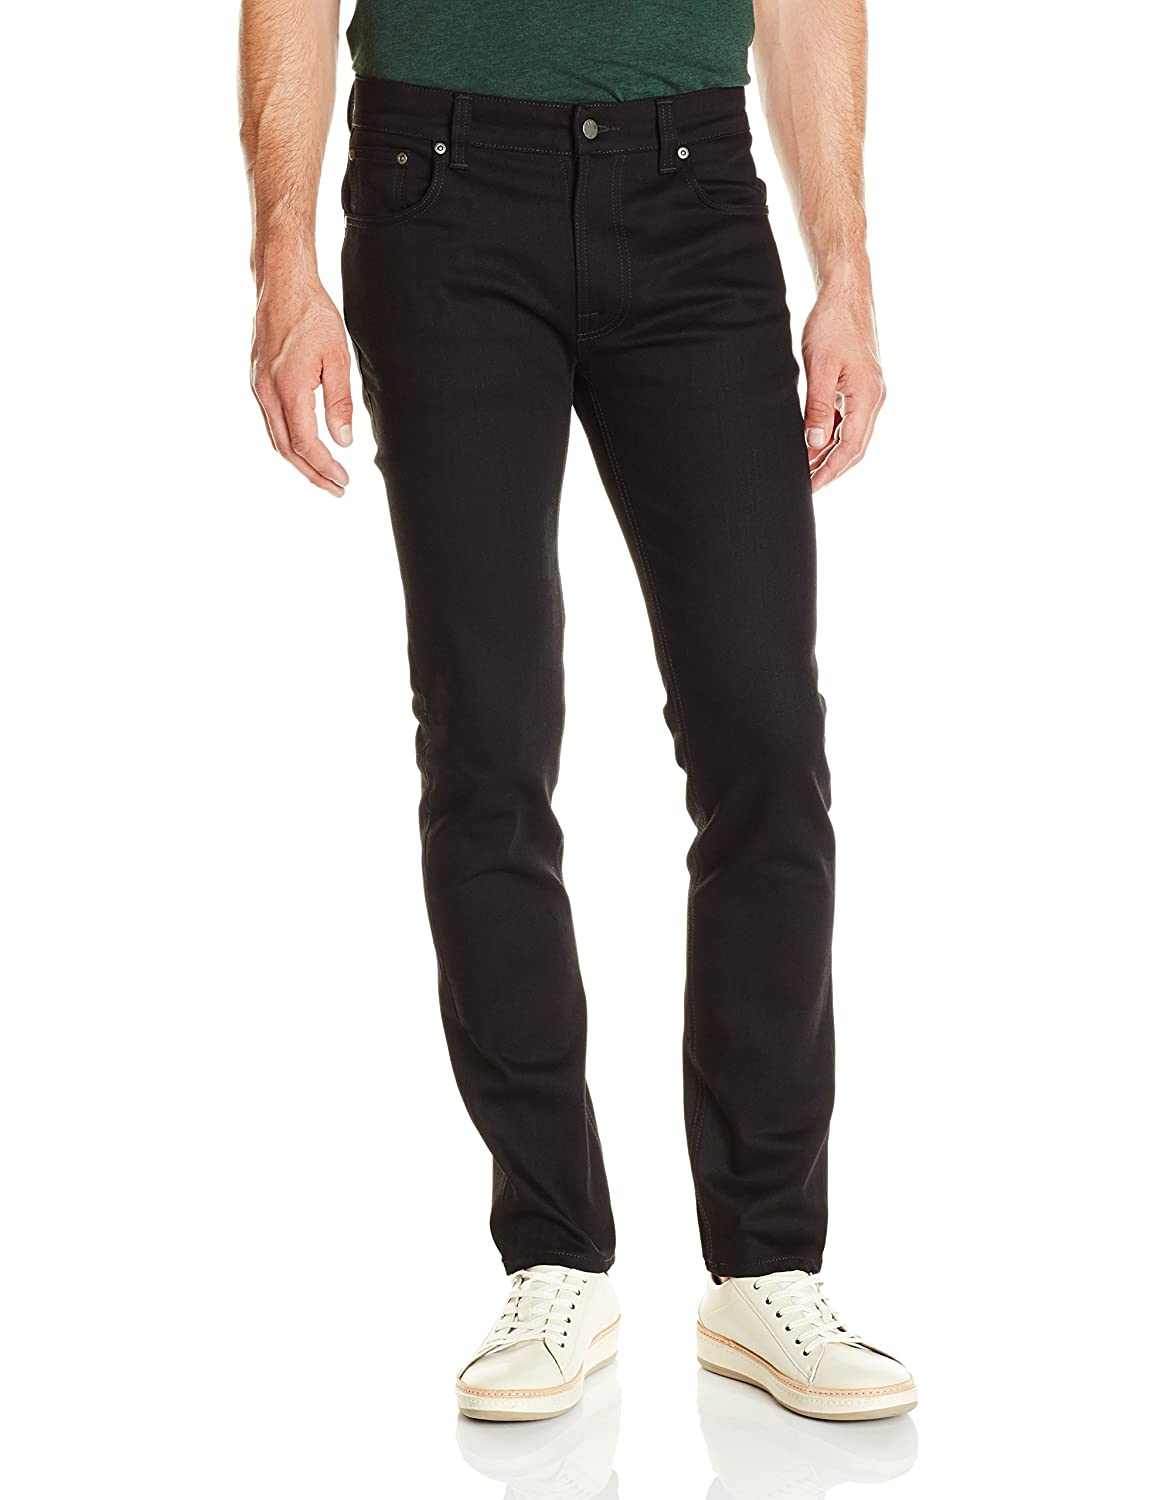 Dry Cold Black Nudie Jeans Men's Men's Men's Thin Finn Jean in Dry Cold Black 797dcf